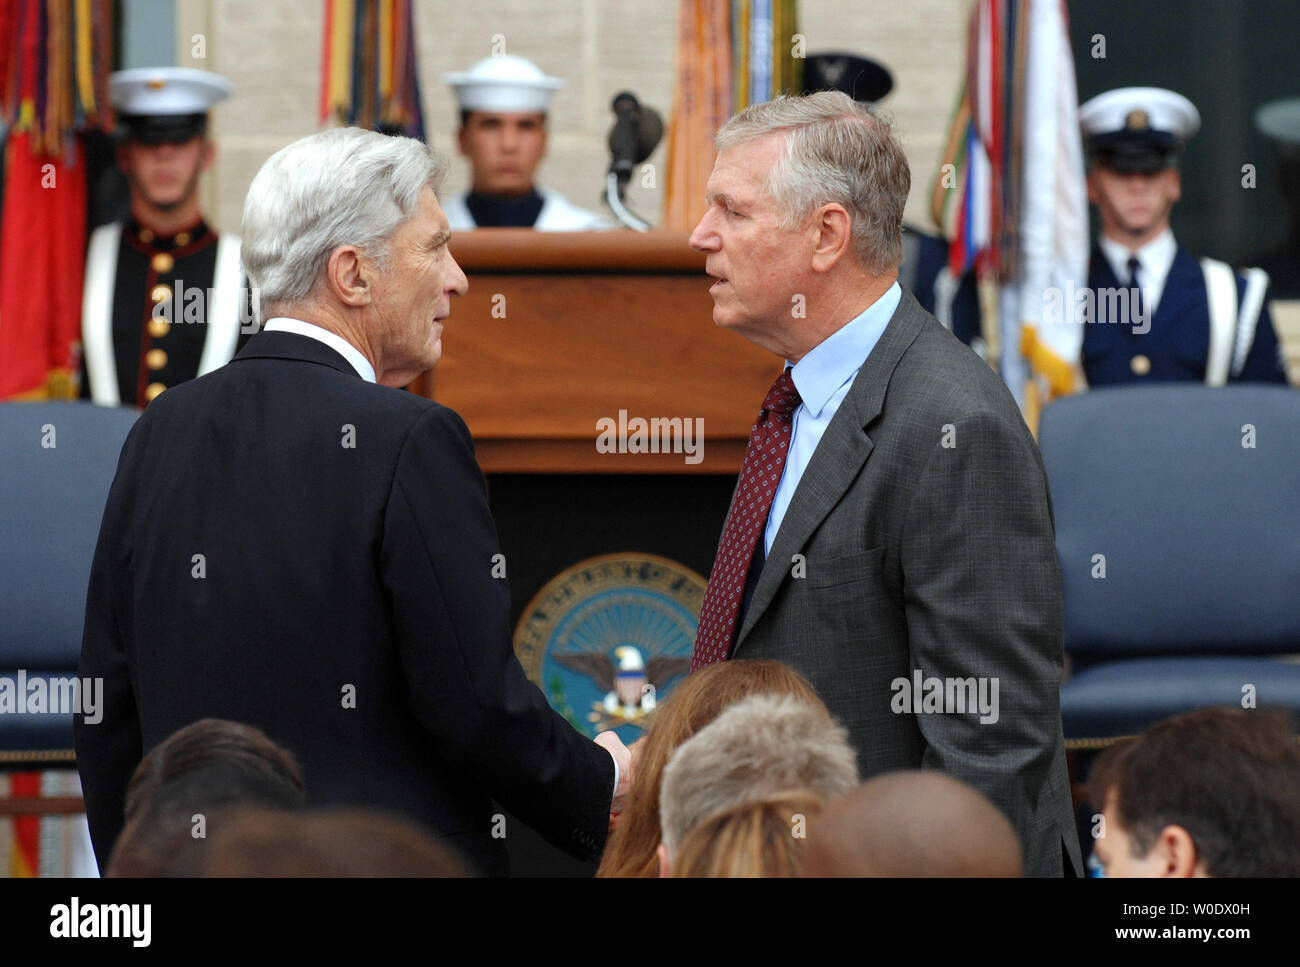 Sen. John Warner, R-VA, shakes hands with former Chairman of the Joint Chiefs of Staff Gen. Richard Meyers at the Pentagon's September 11th Wreath Laying Observance in Arlington, Virginia, on September 11, 2007.  (UPI Photo/Roger L. Wollenberg) - Stock Image